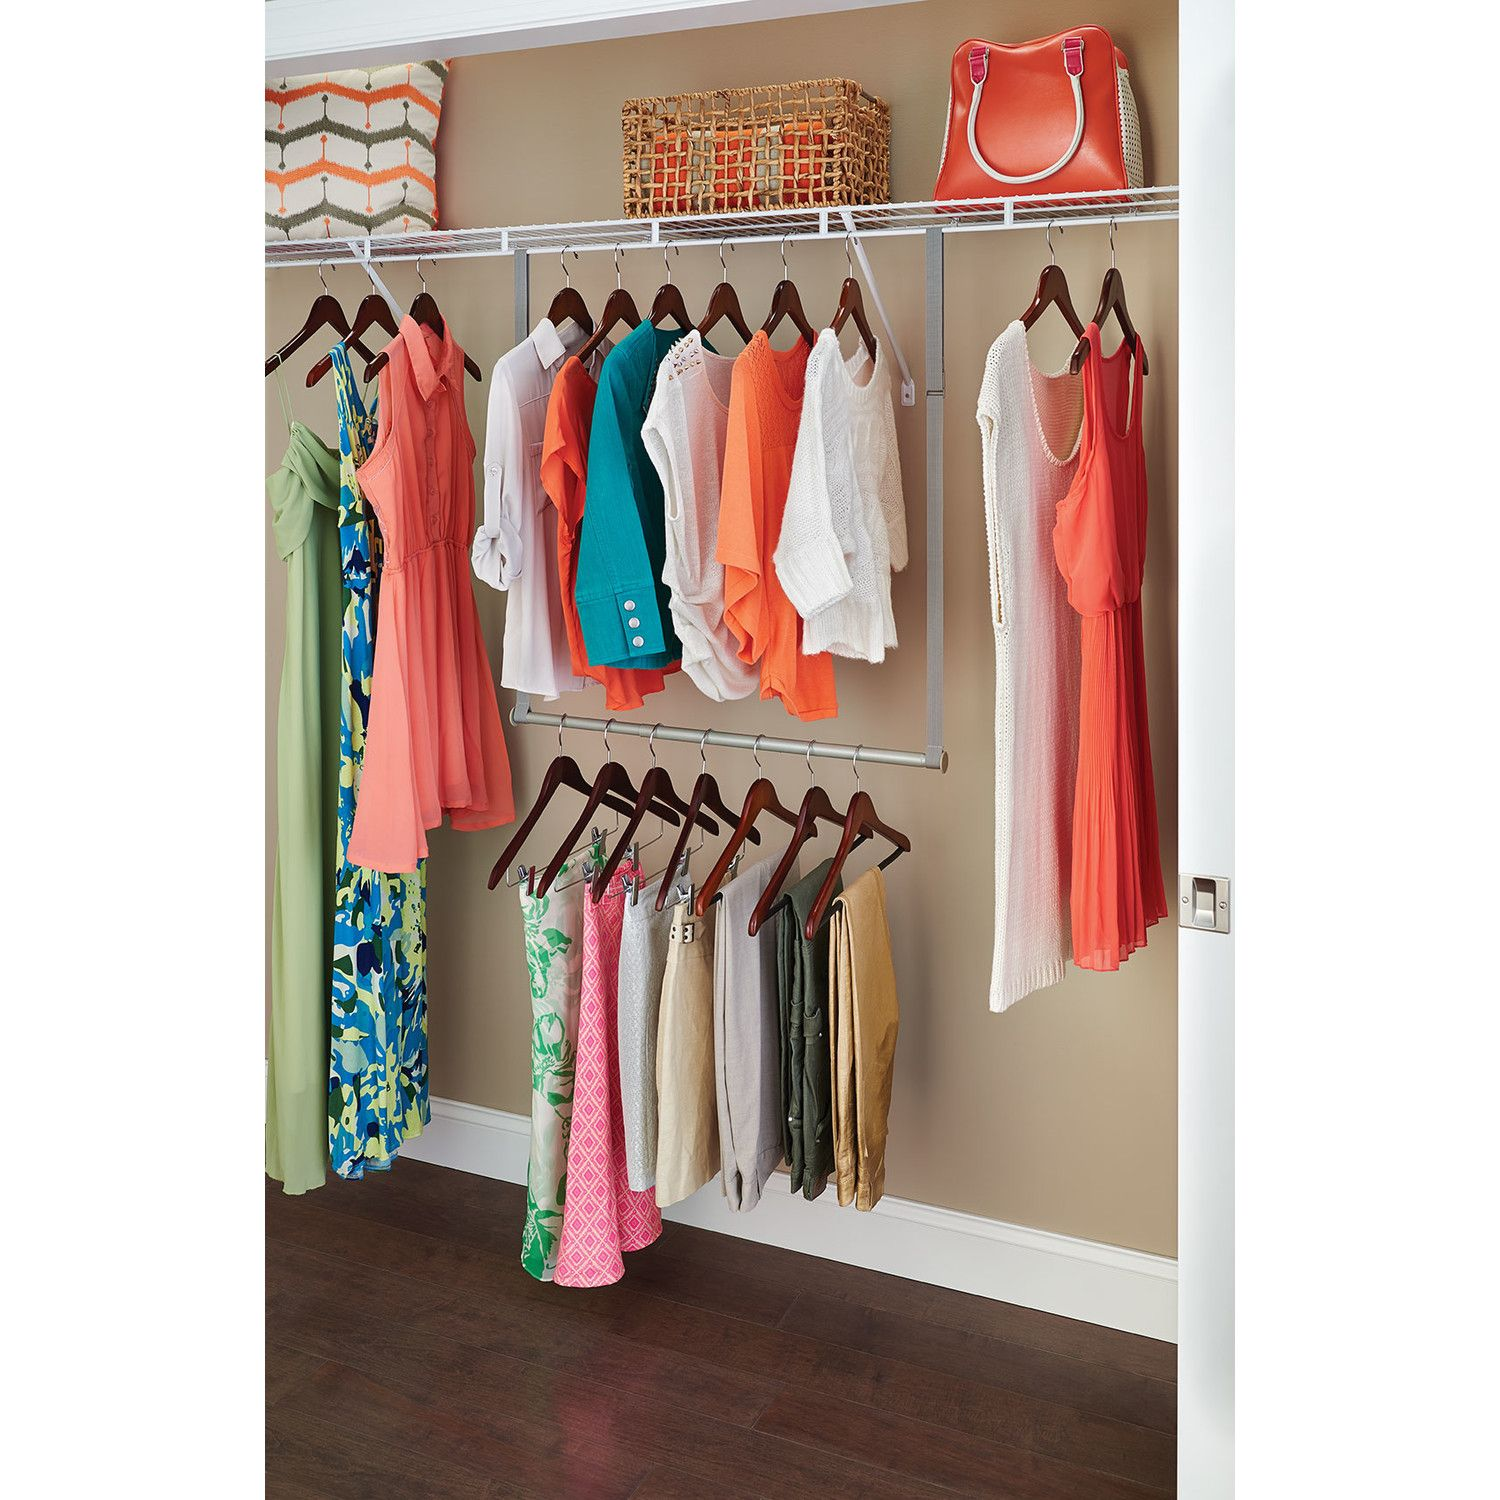 Double Closet Rod Height Prepossessing Features Double Hang Rod Can Retrofit Existing Closets To Add Two Inspiration